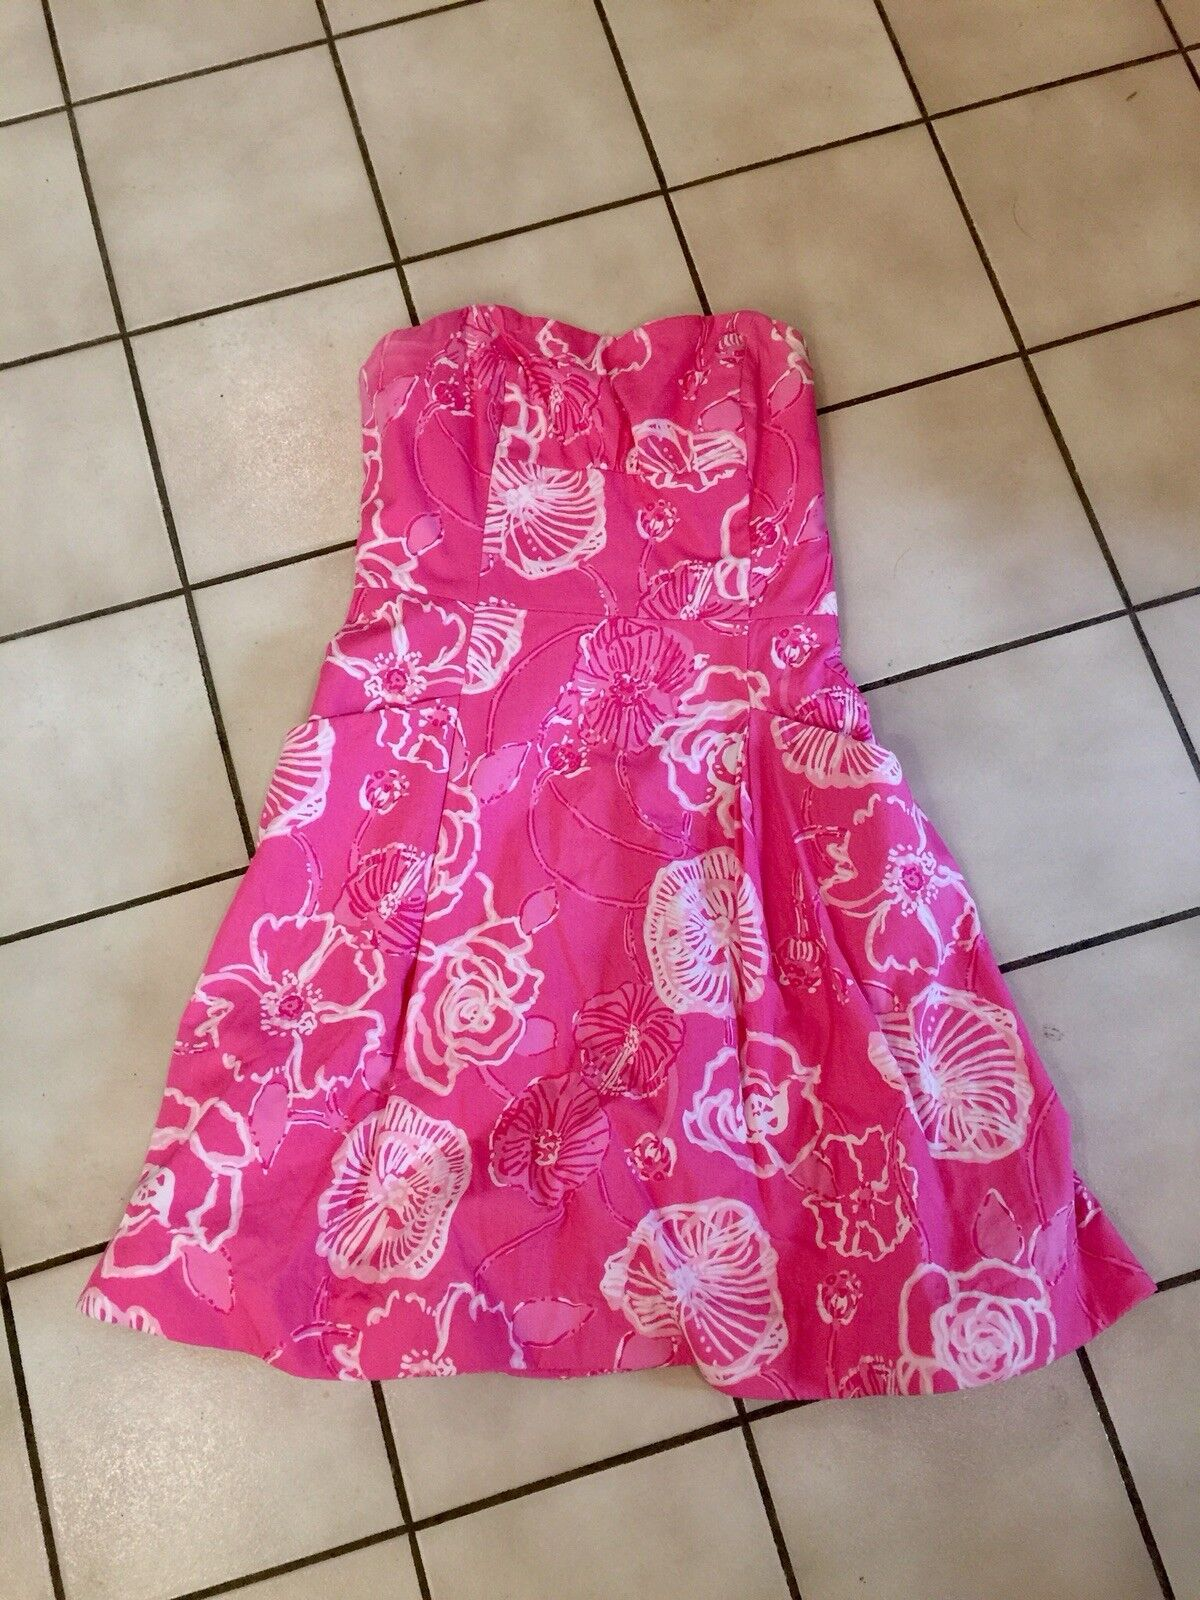 LILLY PULITZER Hot Pink Strapless Dress Size 6